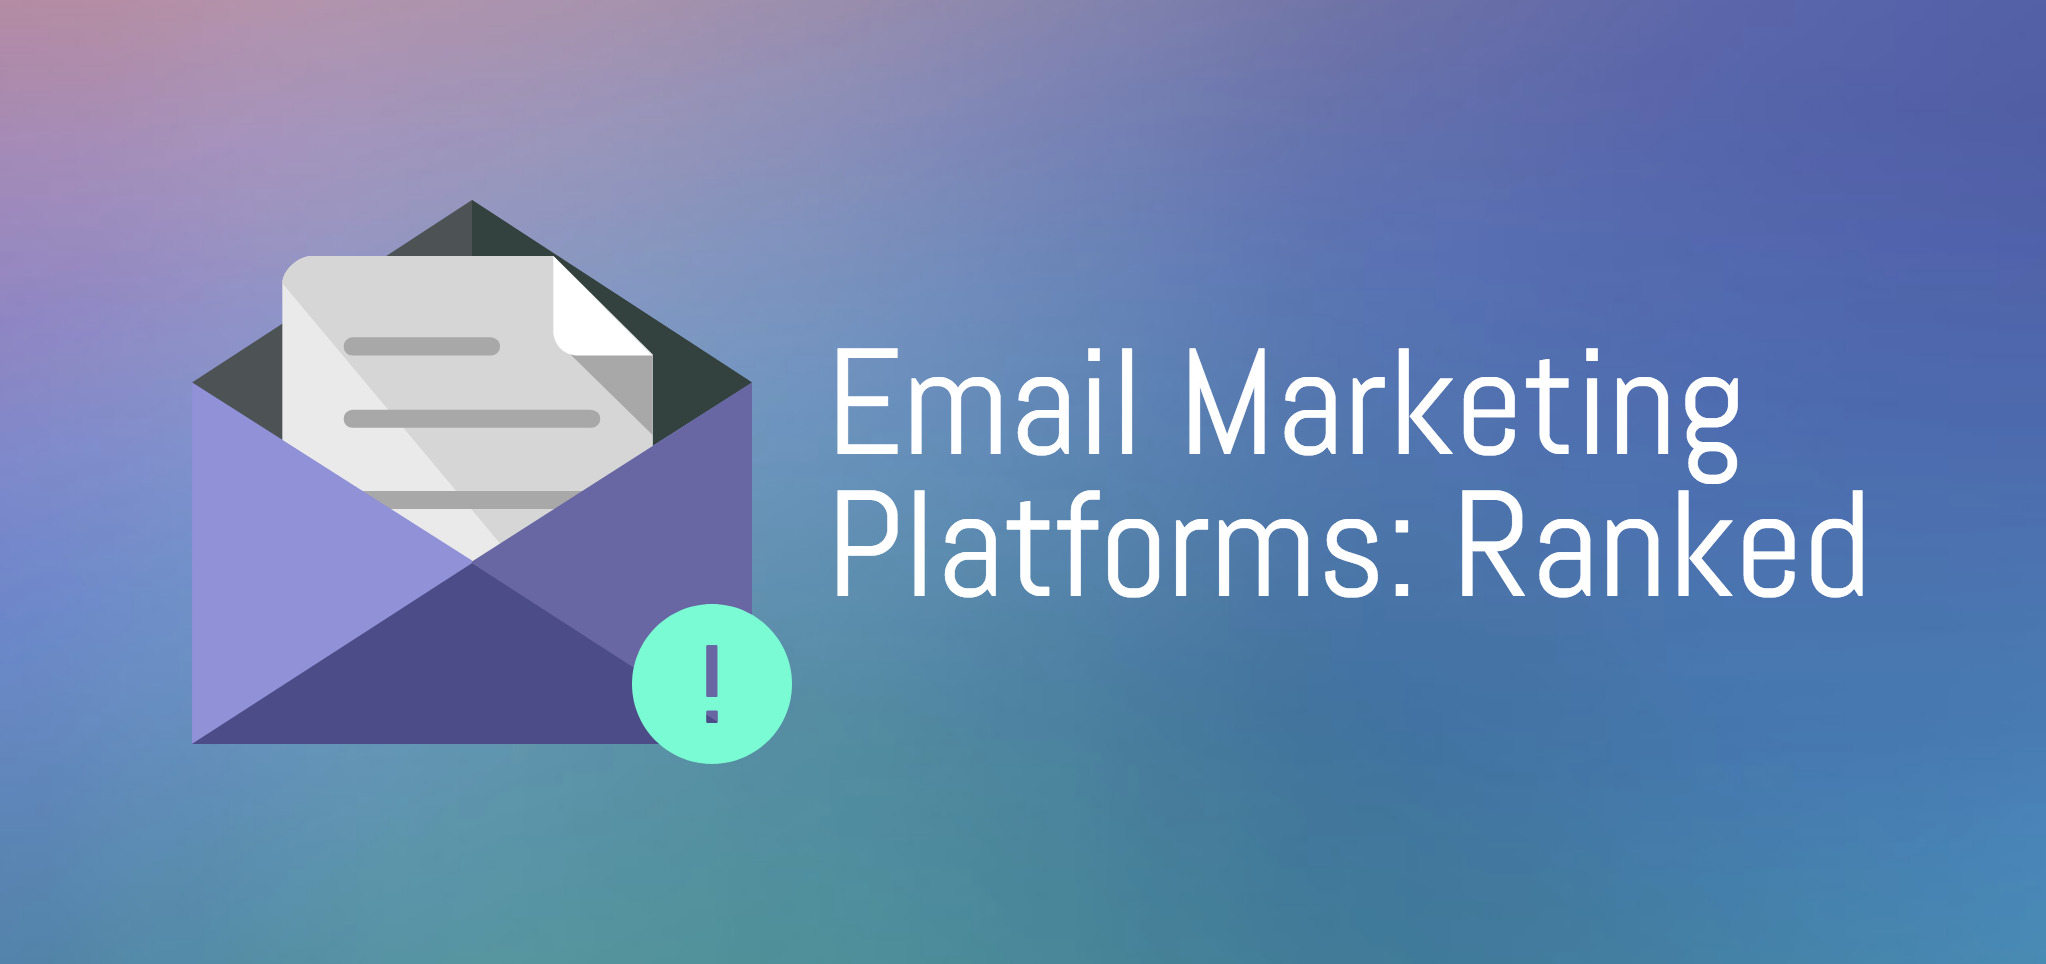 Email Marketing Platforms: Ranked